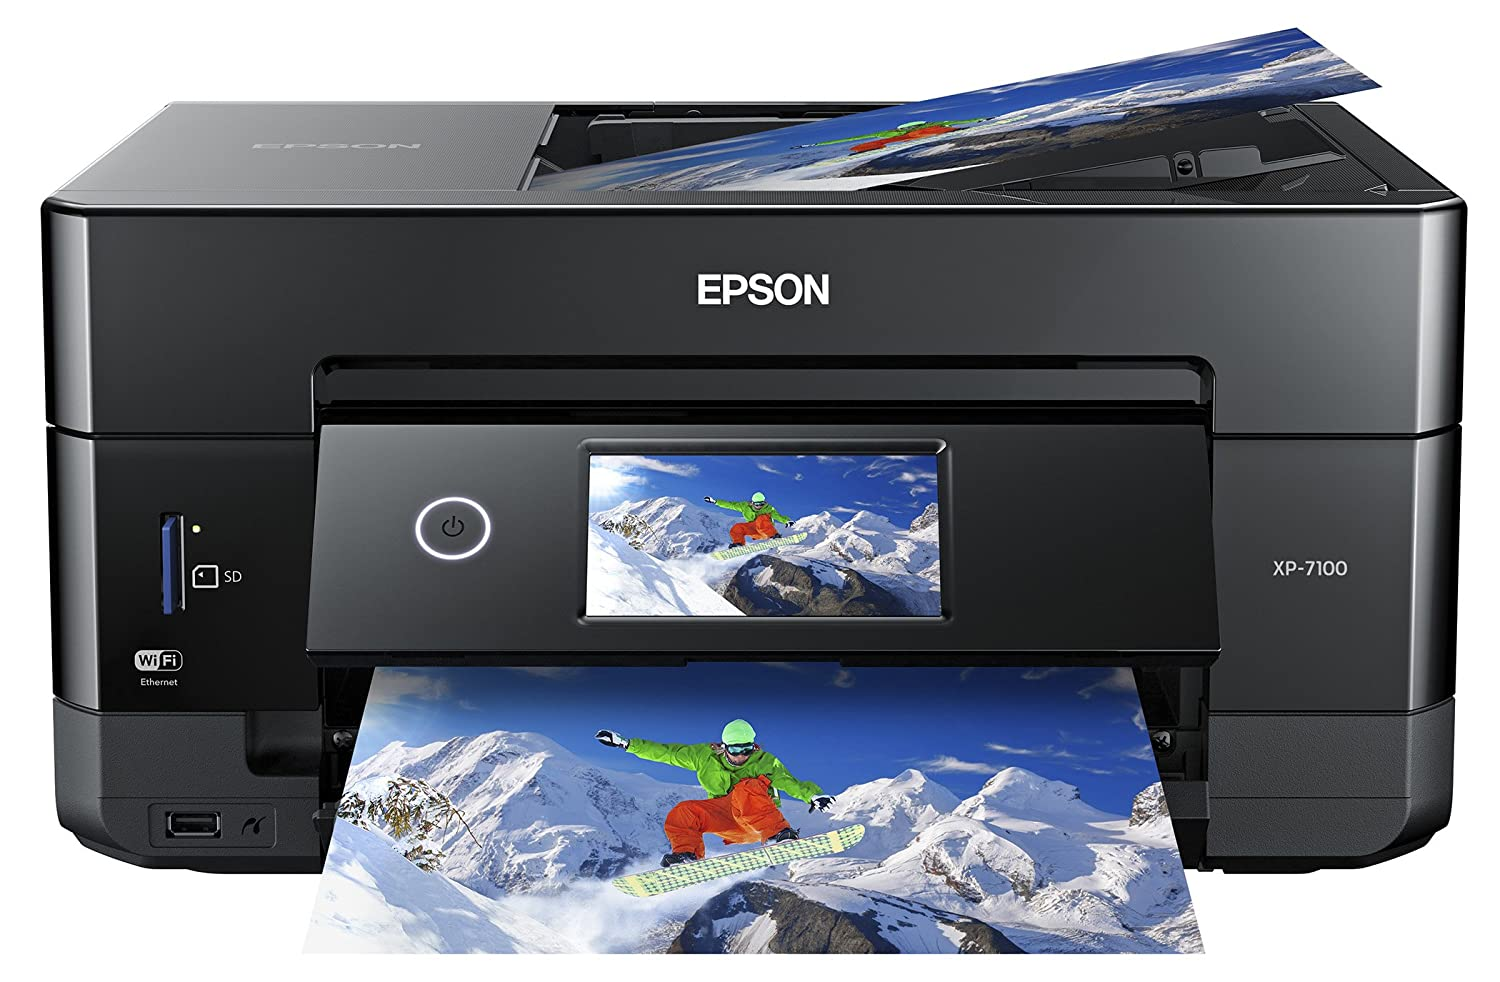 Epson XP-7100 Expression Premium Wireless Color Photo Printer, Black